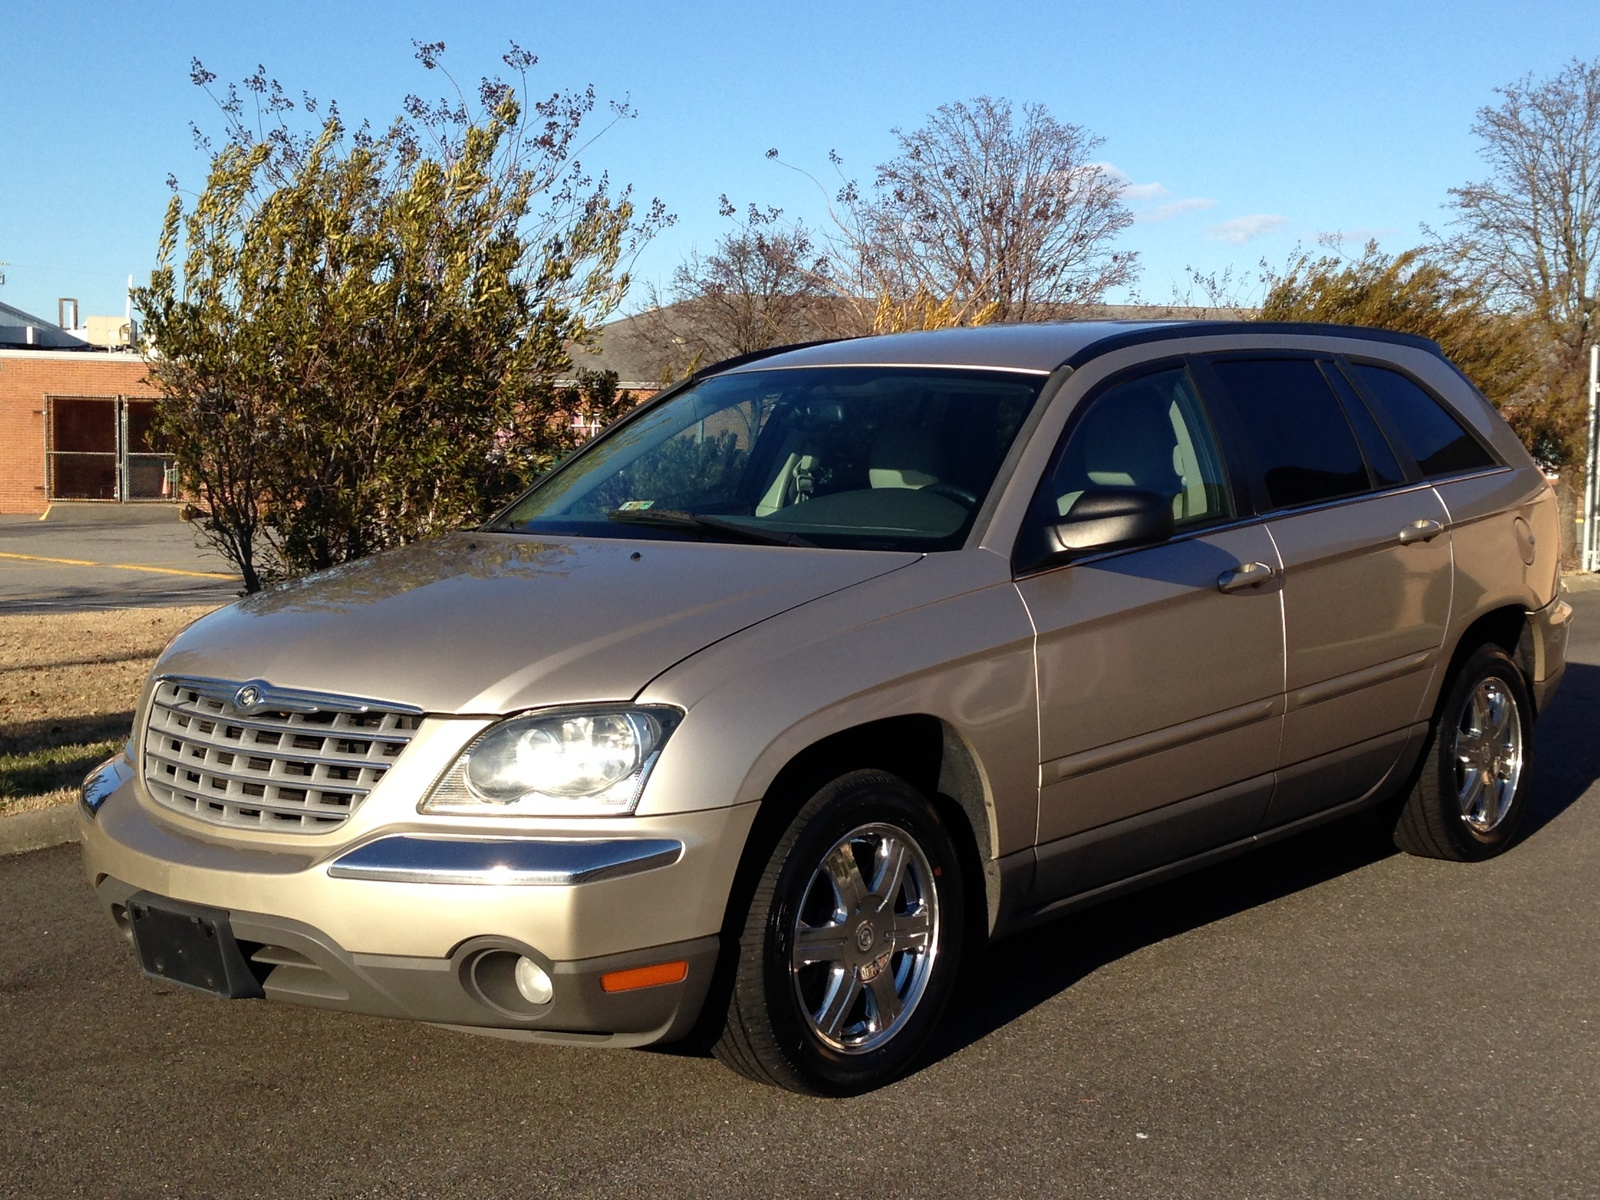 2004 chrysler pacifica base awd picture exterior. Cars Review. Best American Auto & Cars Review